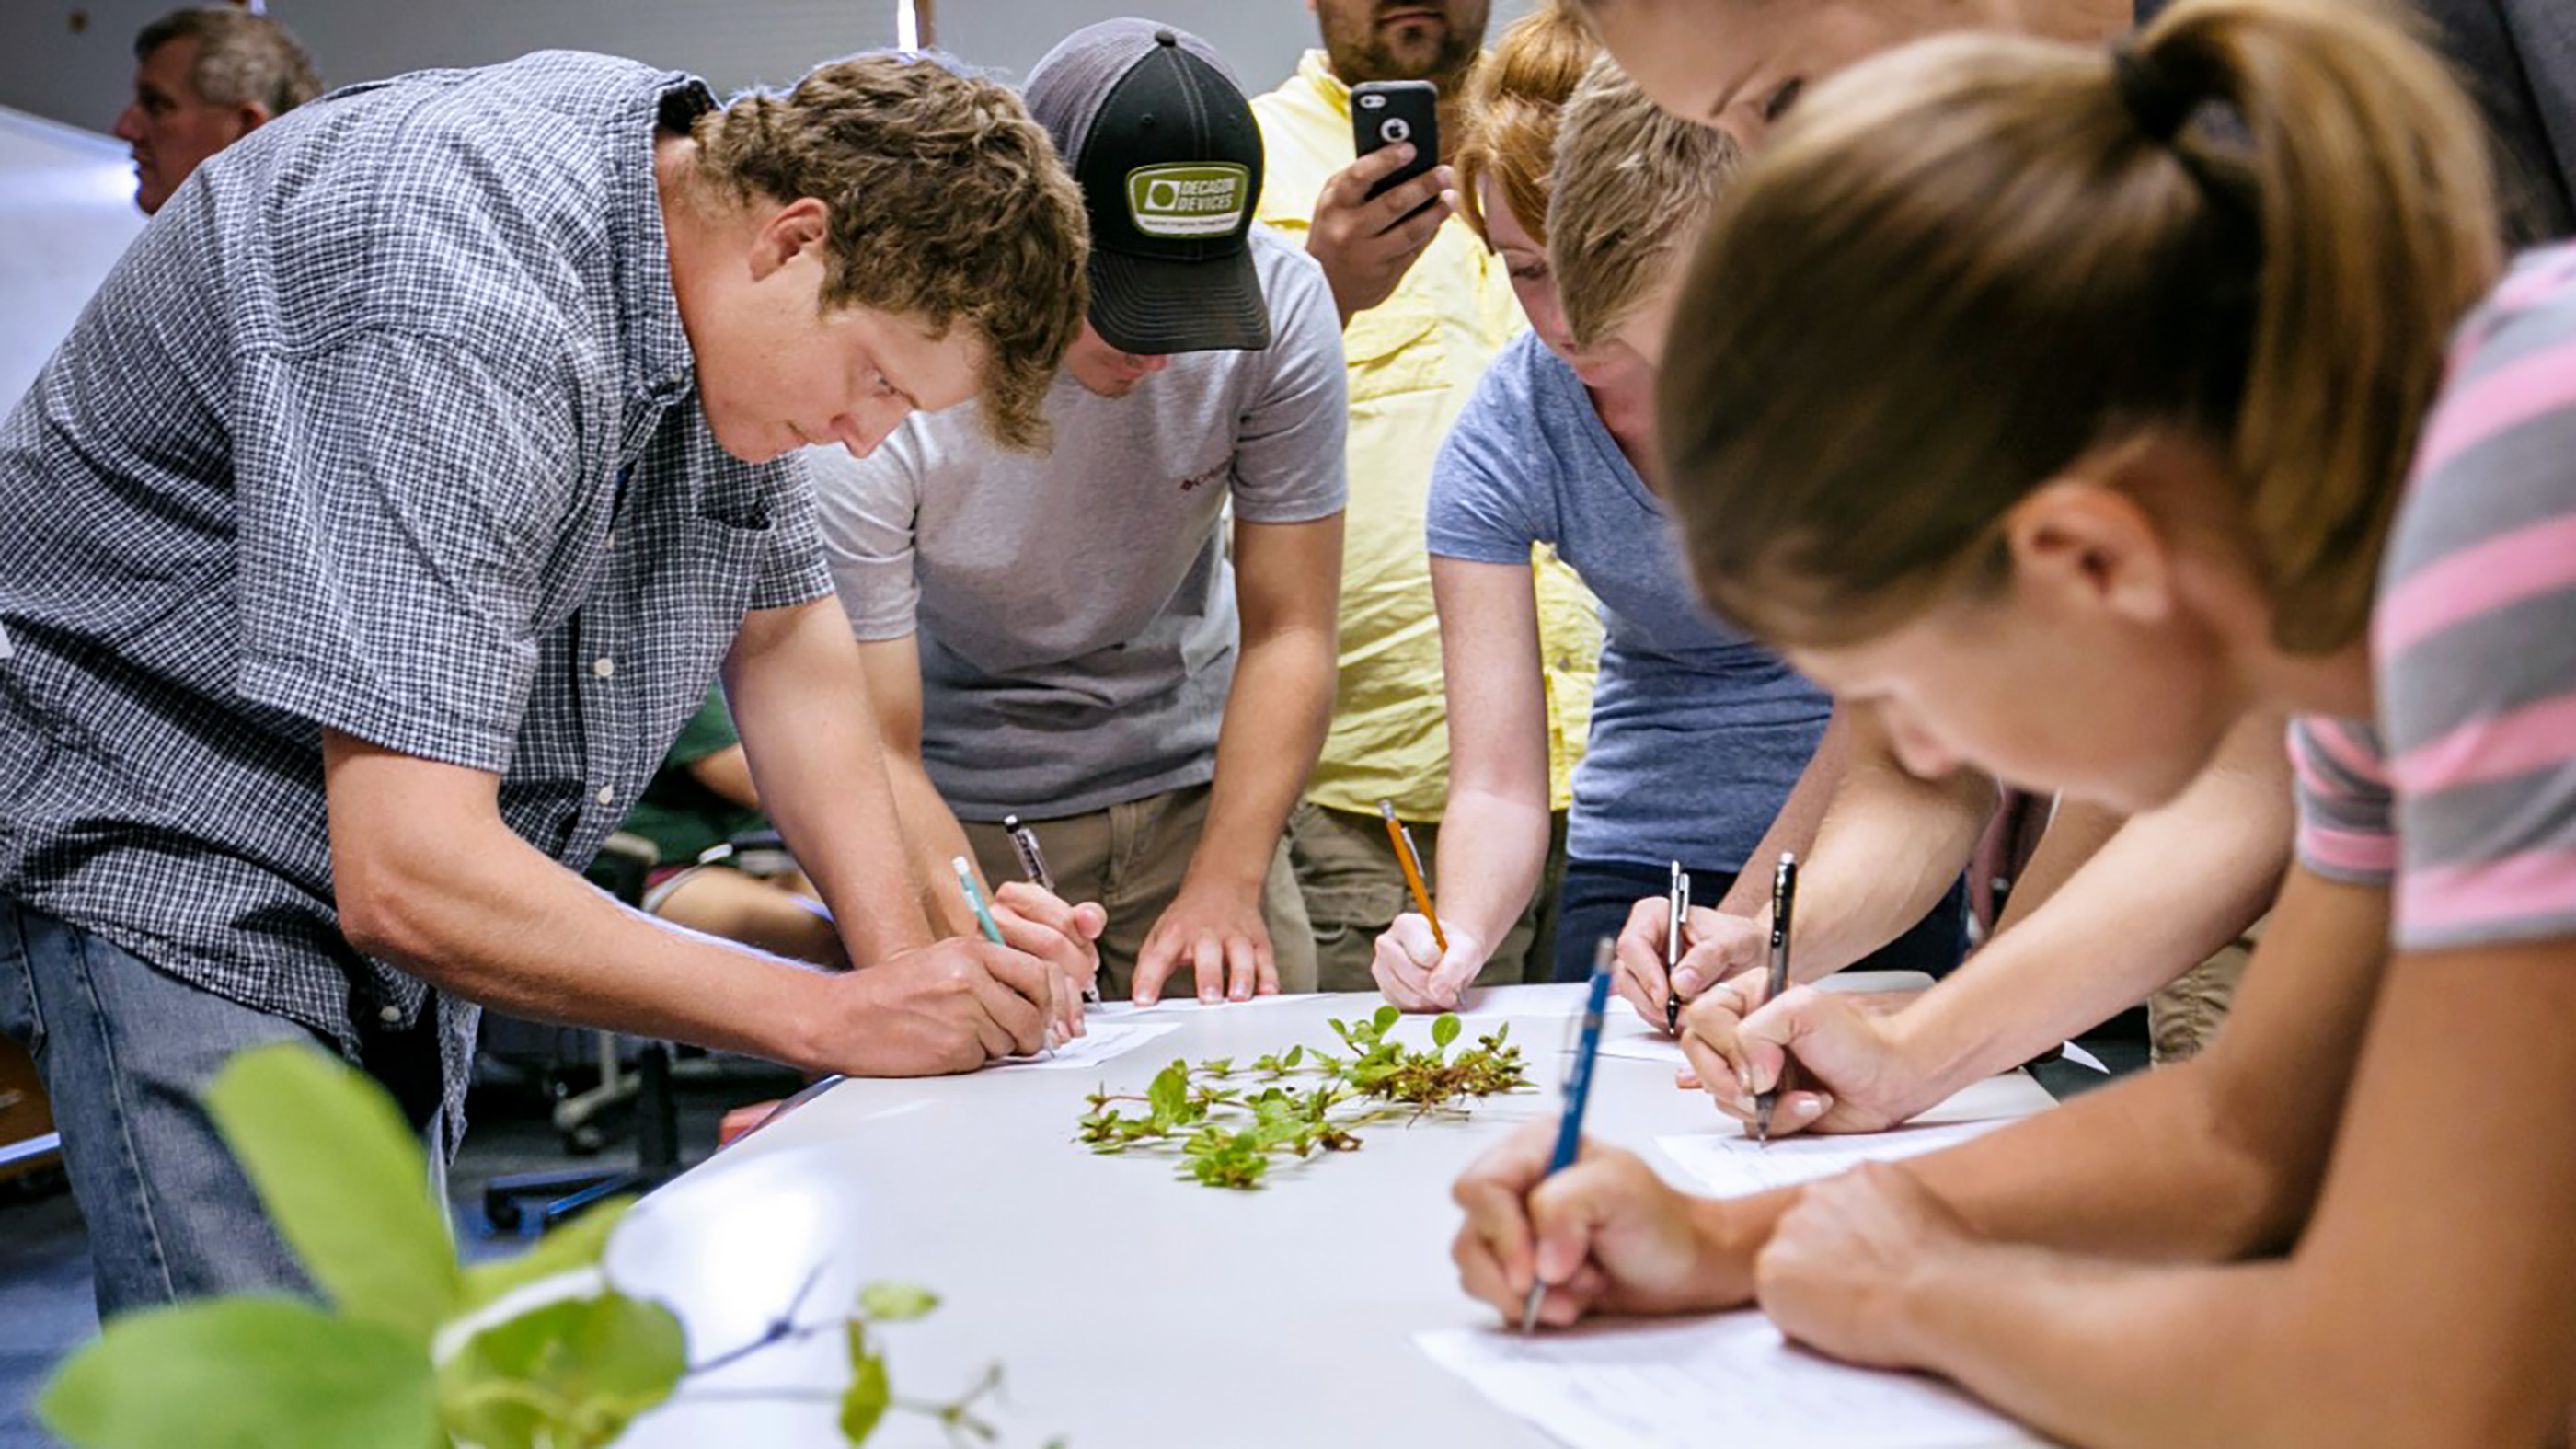 The UGA College of Agricultural and Environmental Sciences offers Double Dawgs degree pathways allowing students to graduate with bachelor's and master's degrees in five years.